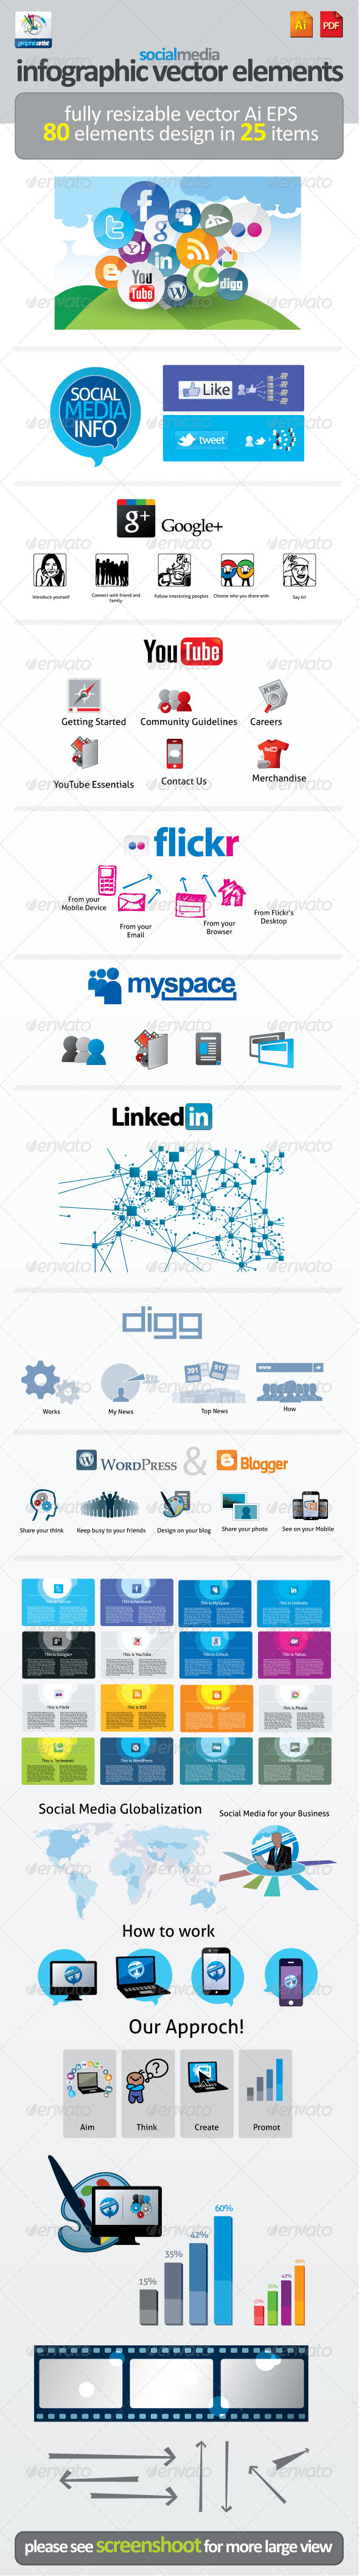 Social Media Infographic Vector Elements - Miscellaneous Vectors